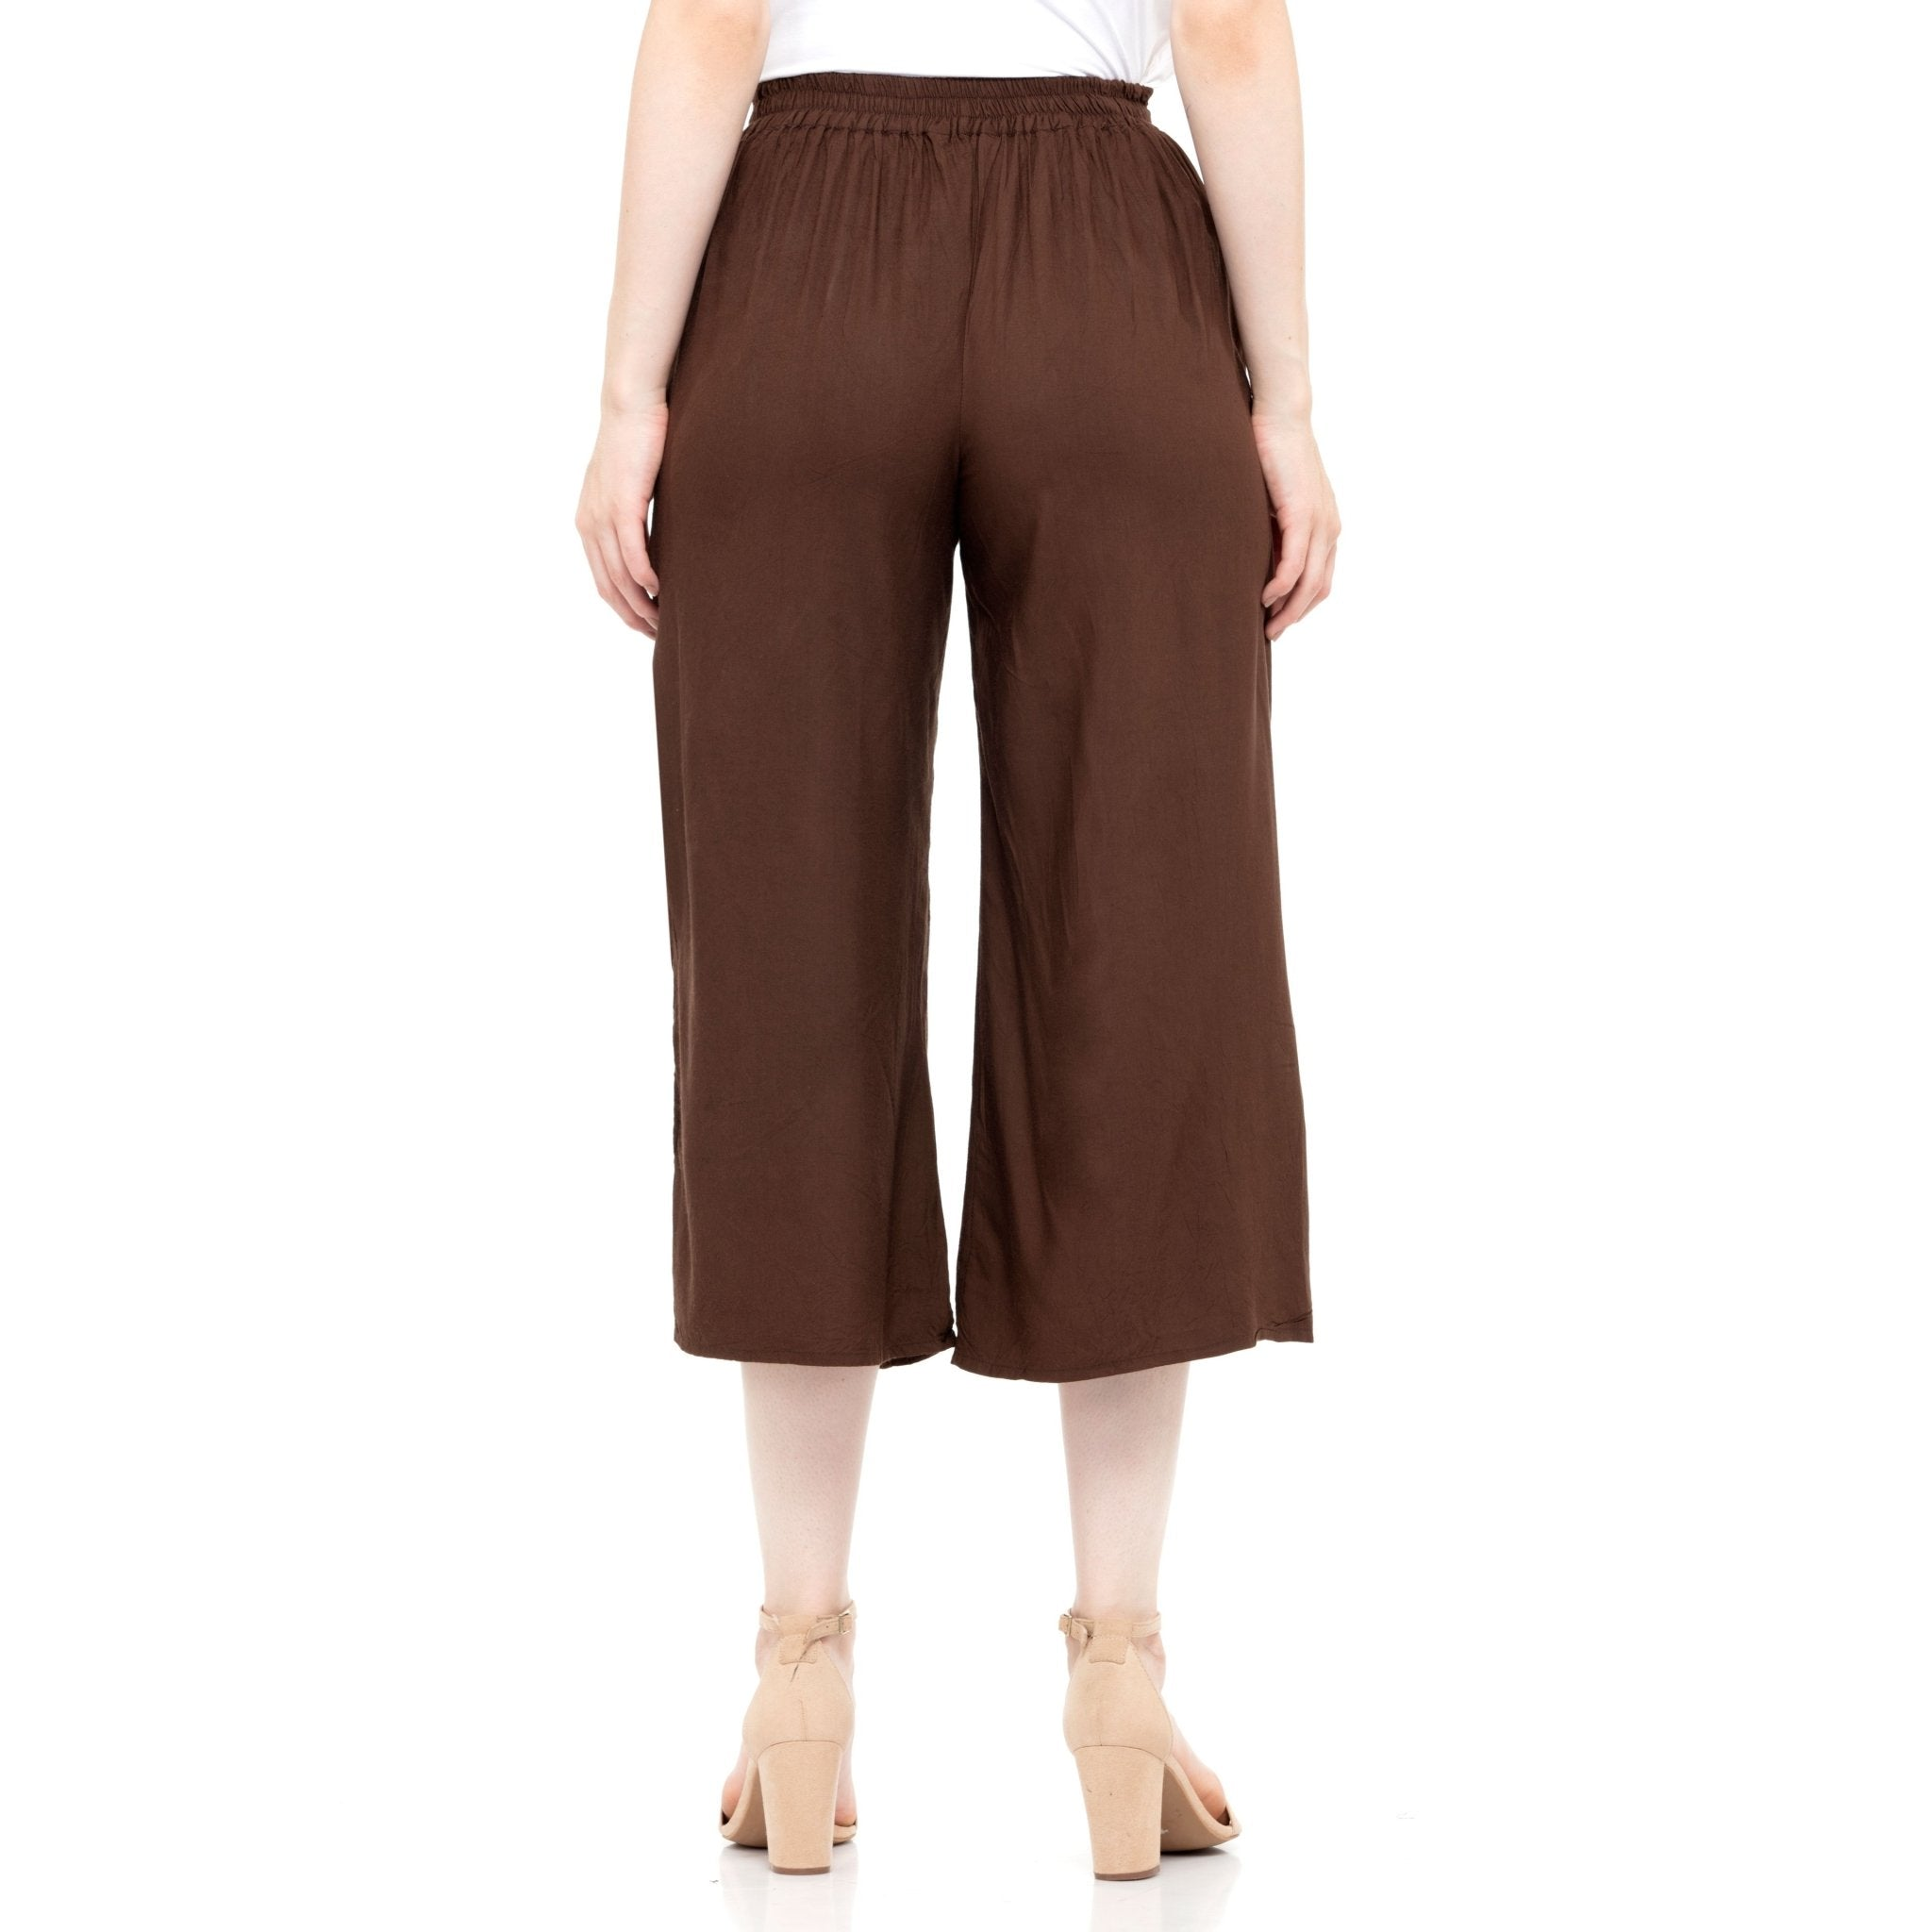 BROWN SOLID PLEATED CULOTTES - ZOMO